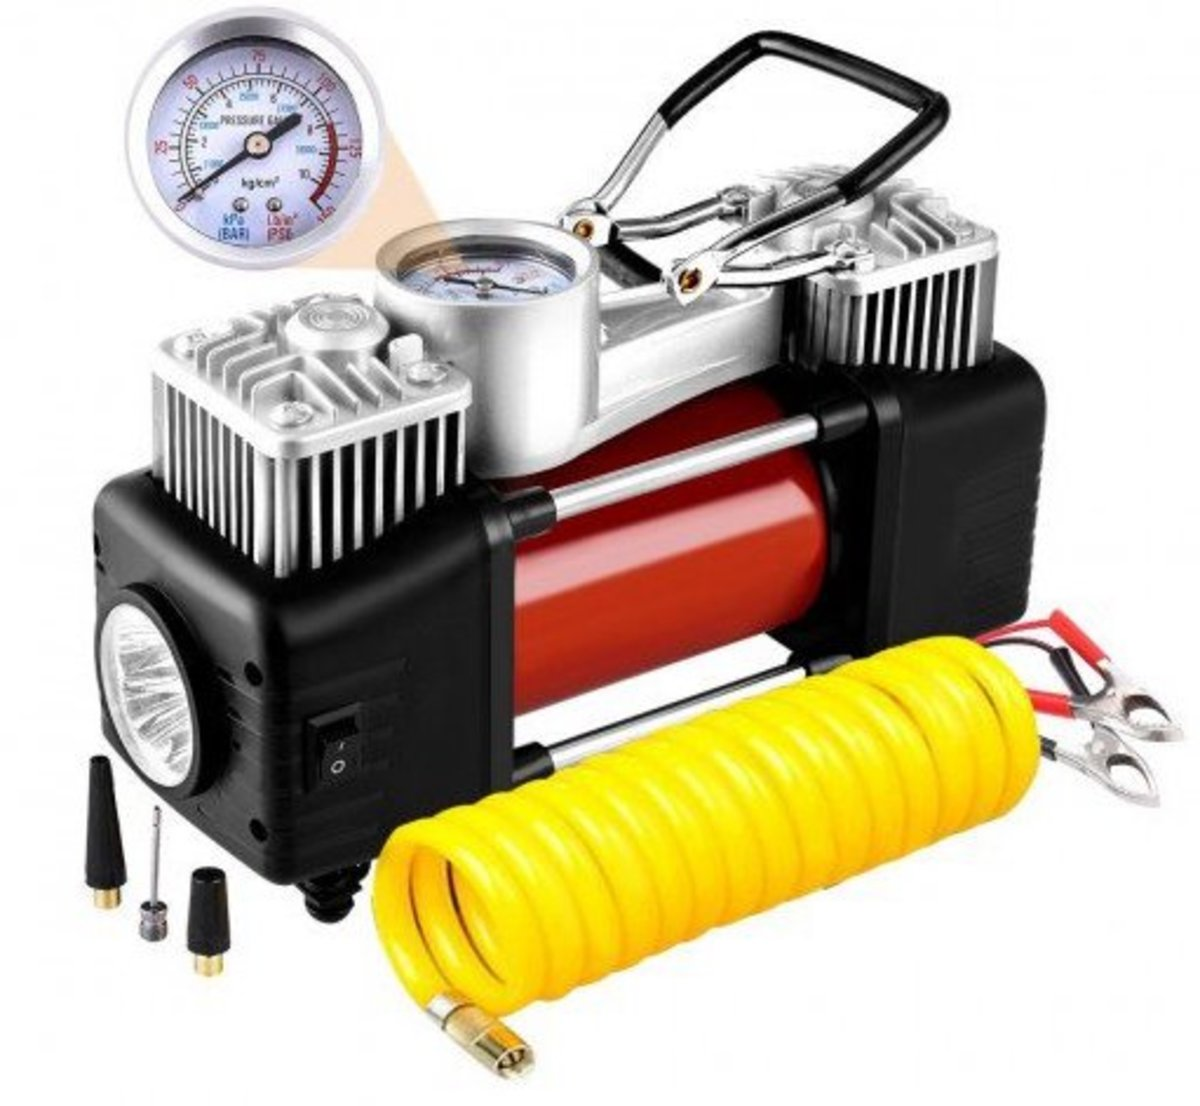 The Audew 2-Cylinder Portable Air Compressor: A Review